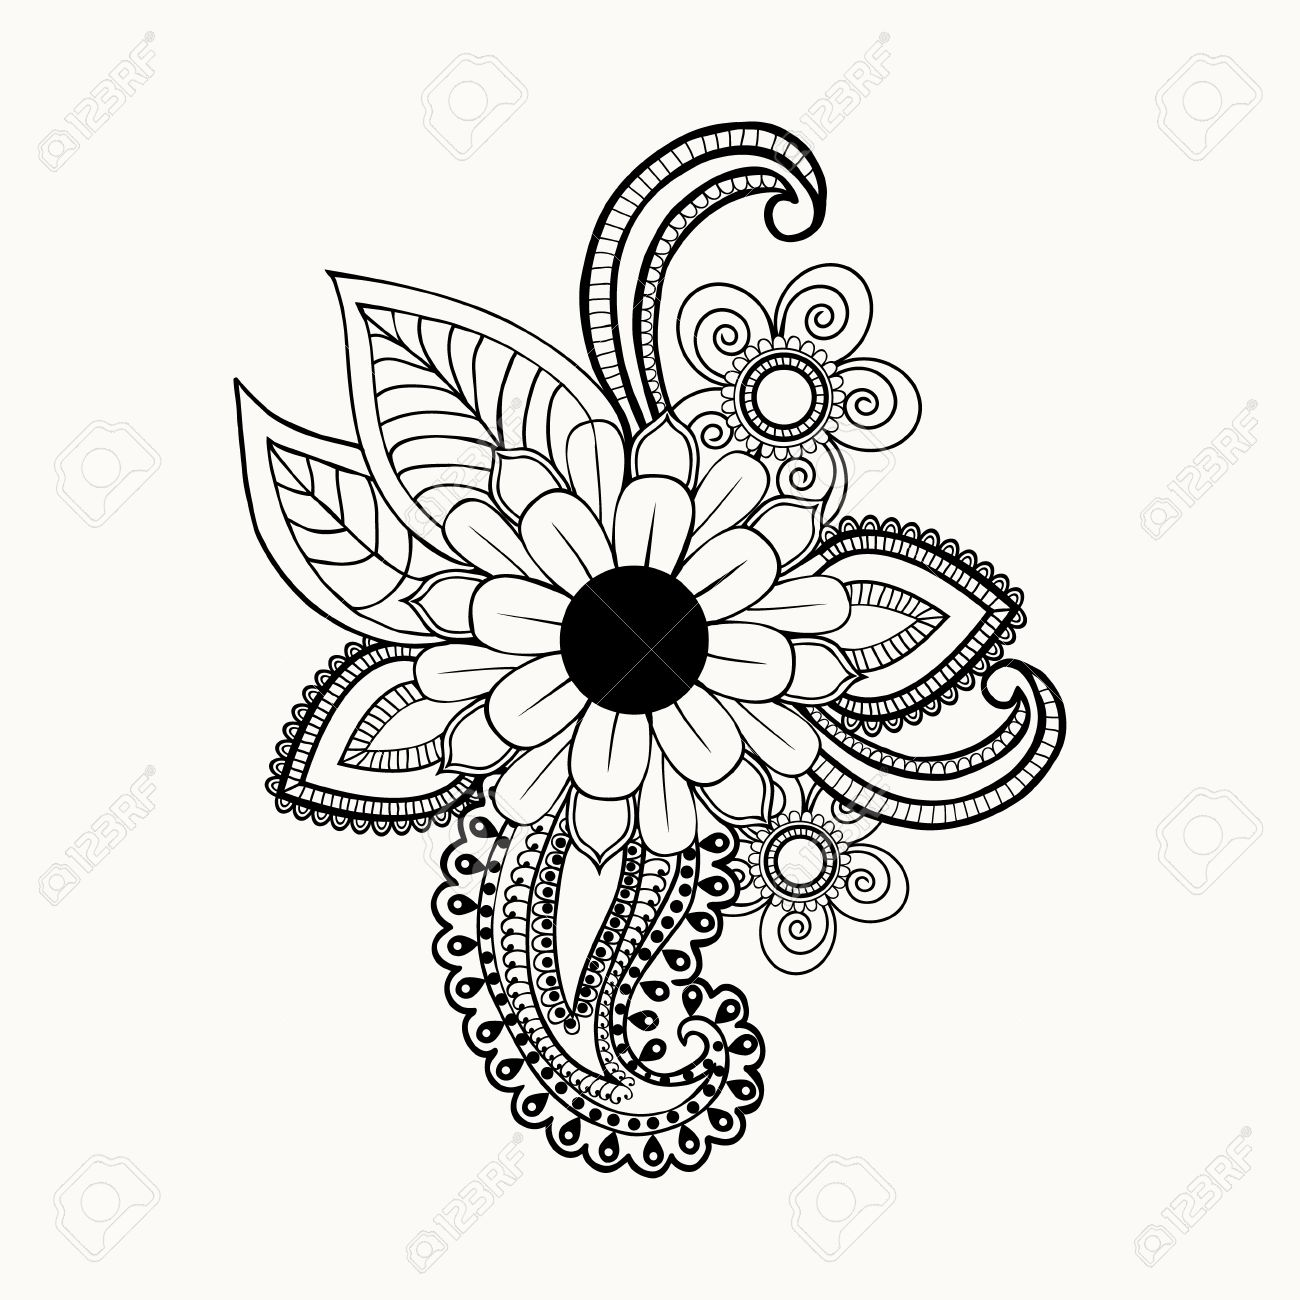 Beautiful Black and white flowers and leaves design element.